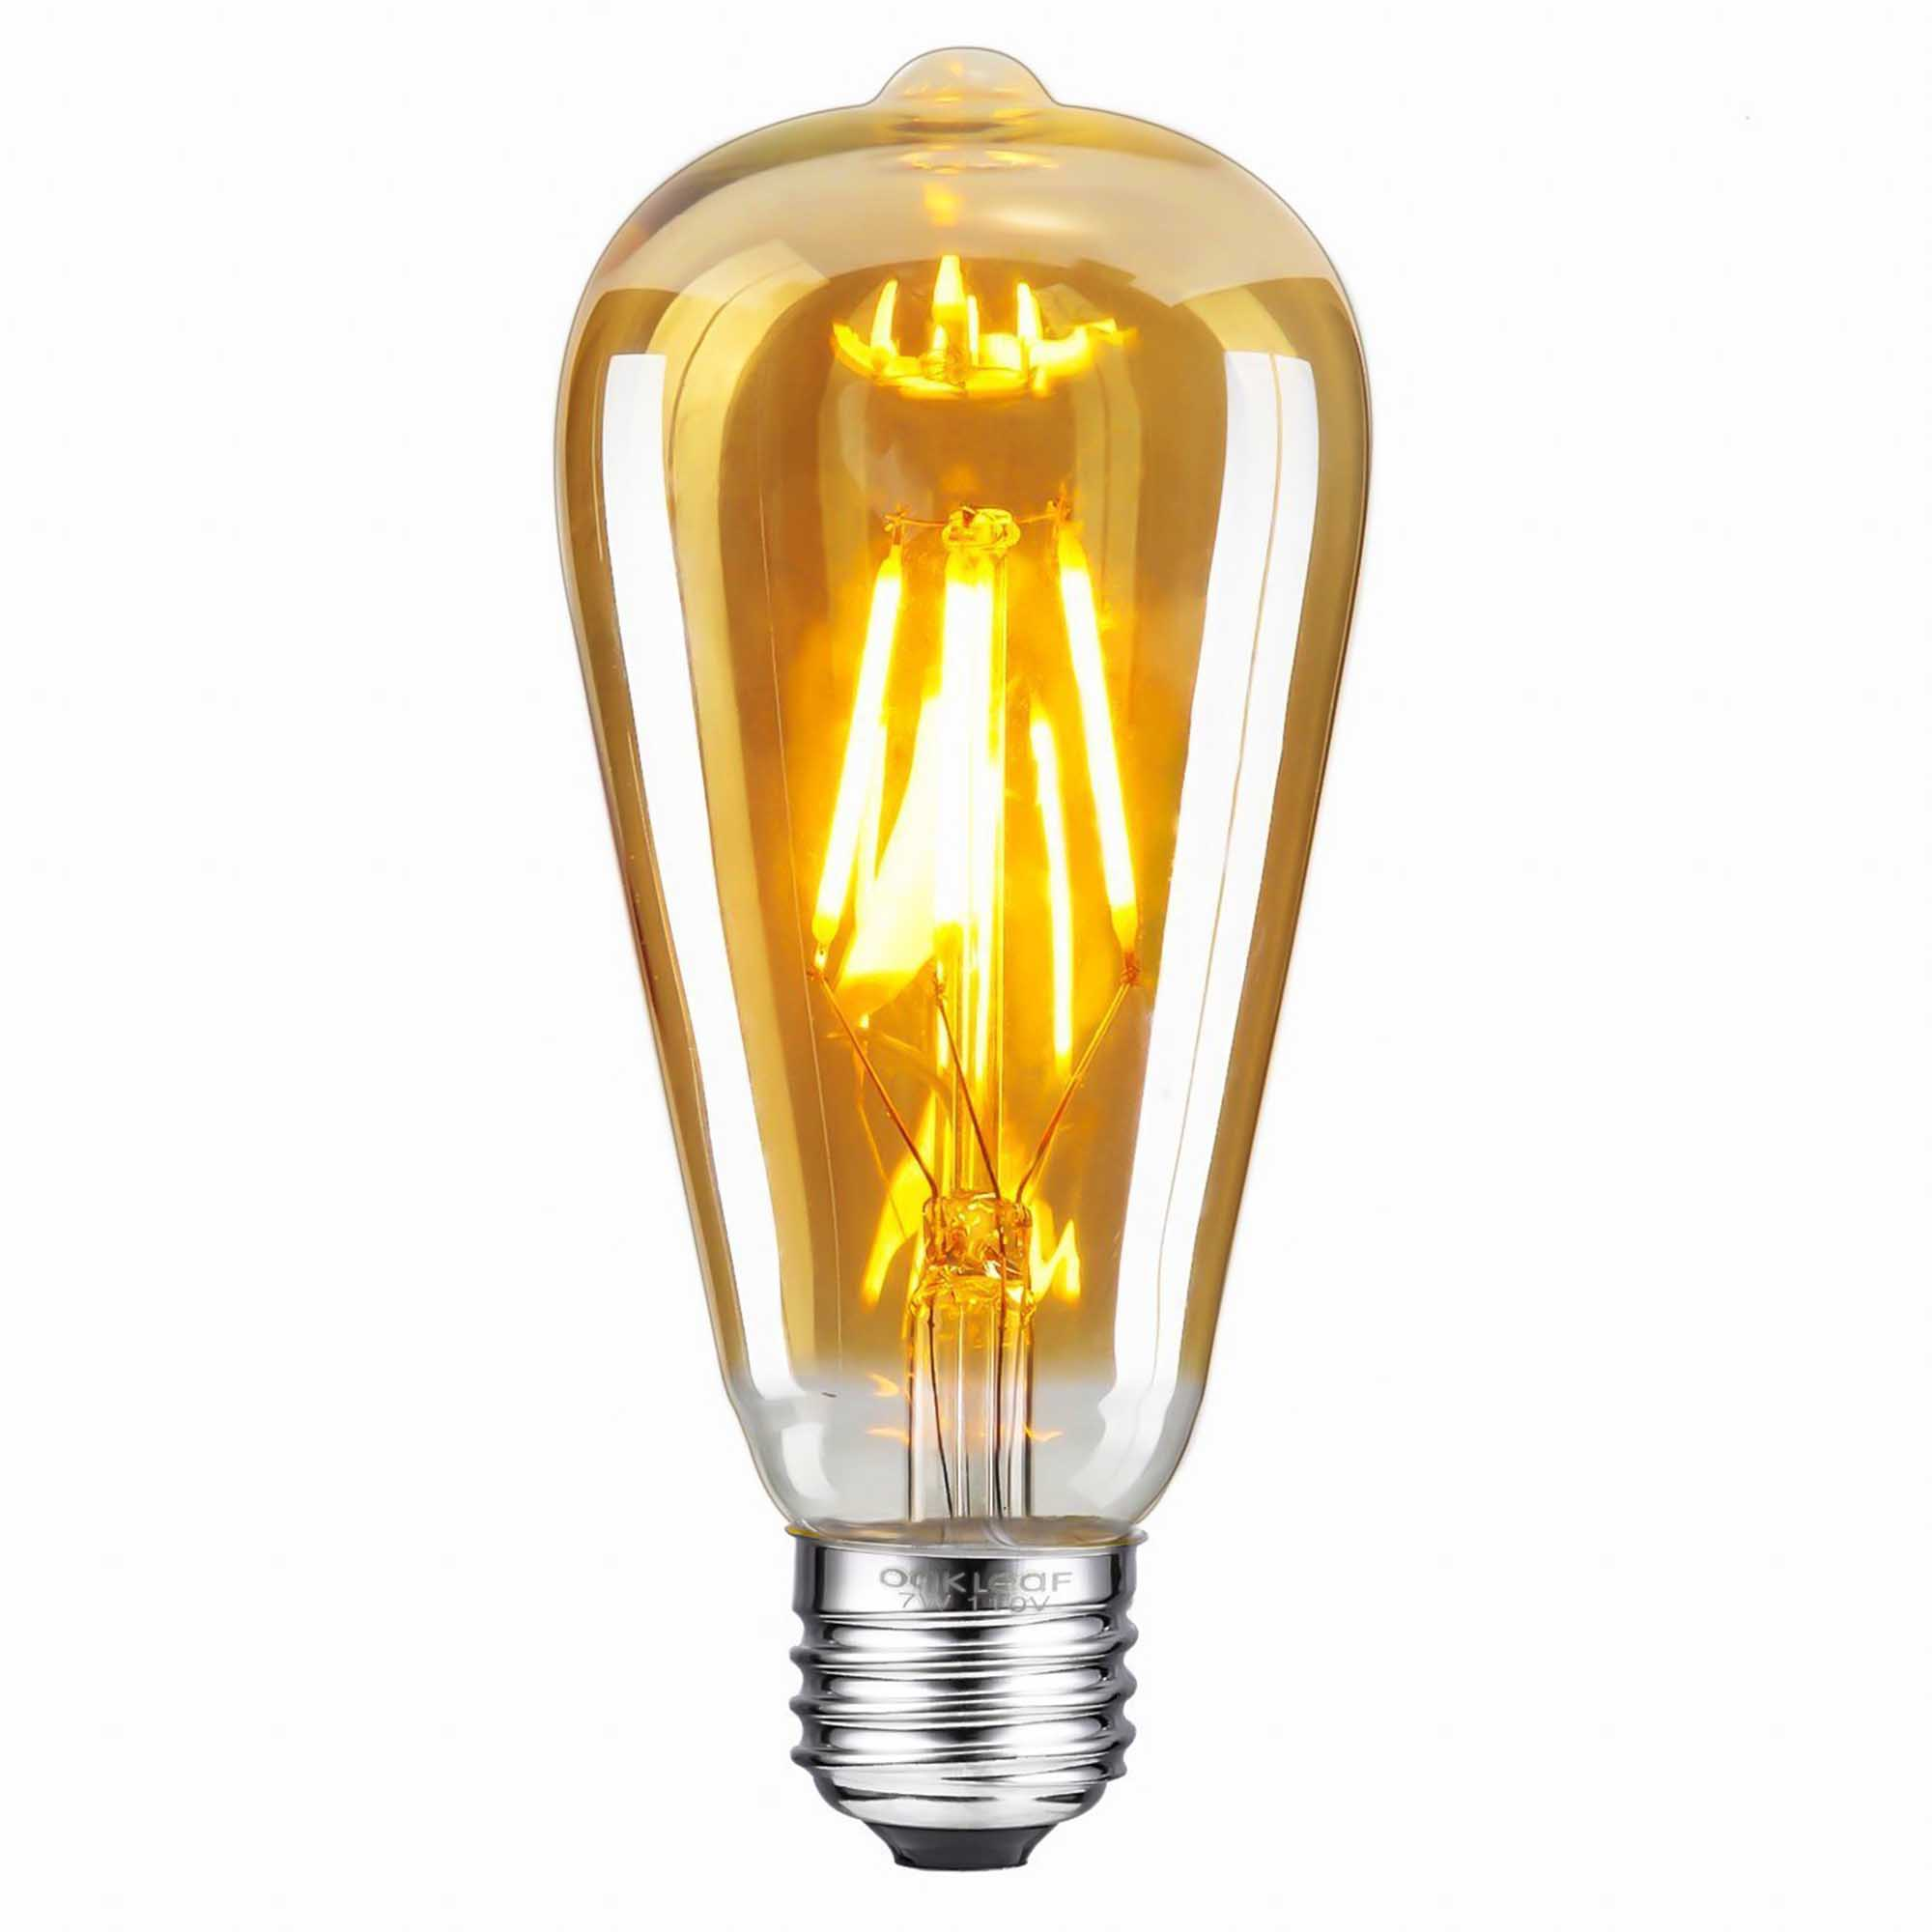 ST64 Pear Shape Filament LED Bulb, 4 Watt, Industrial Decorative Vintage Light Lamp, Set of 4